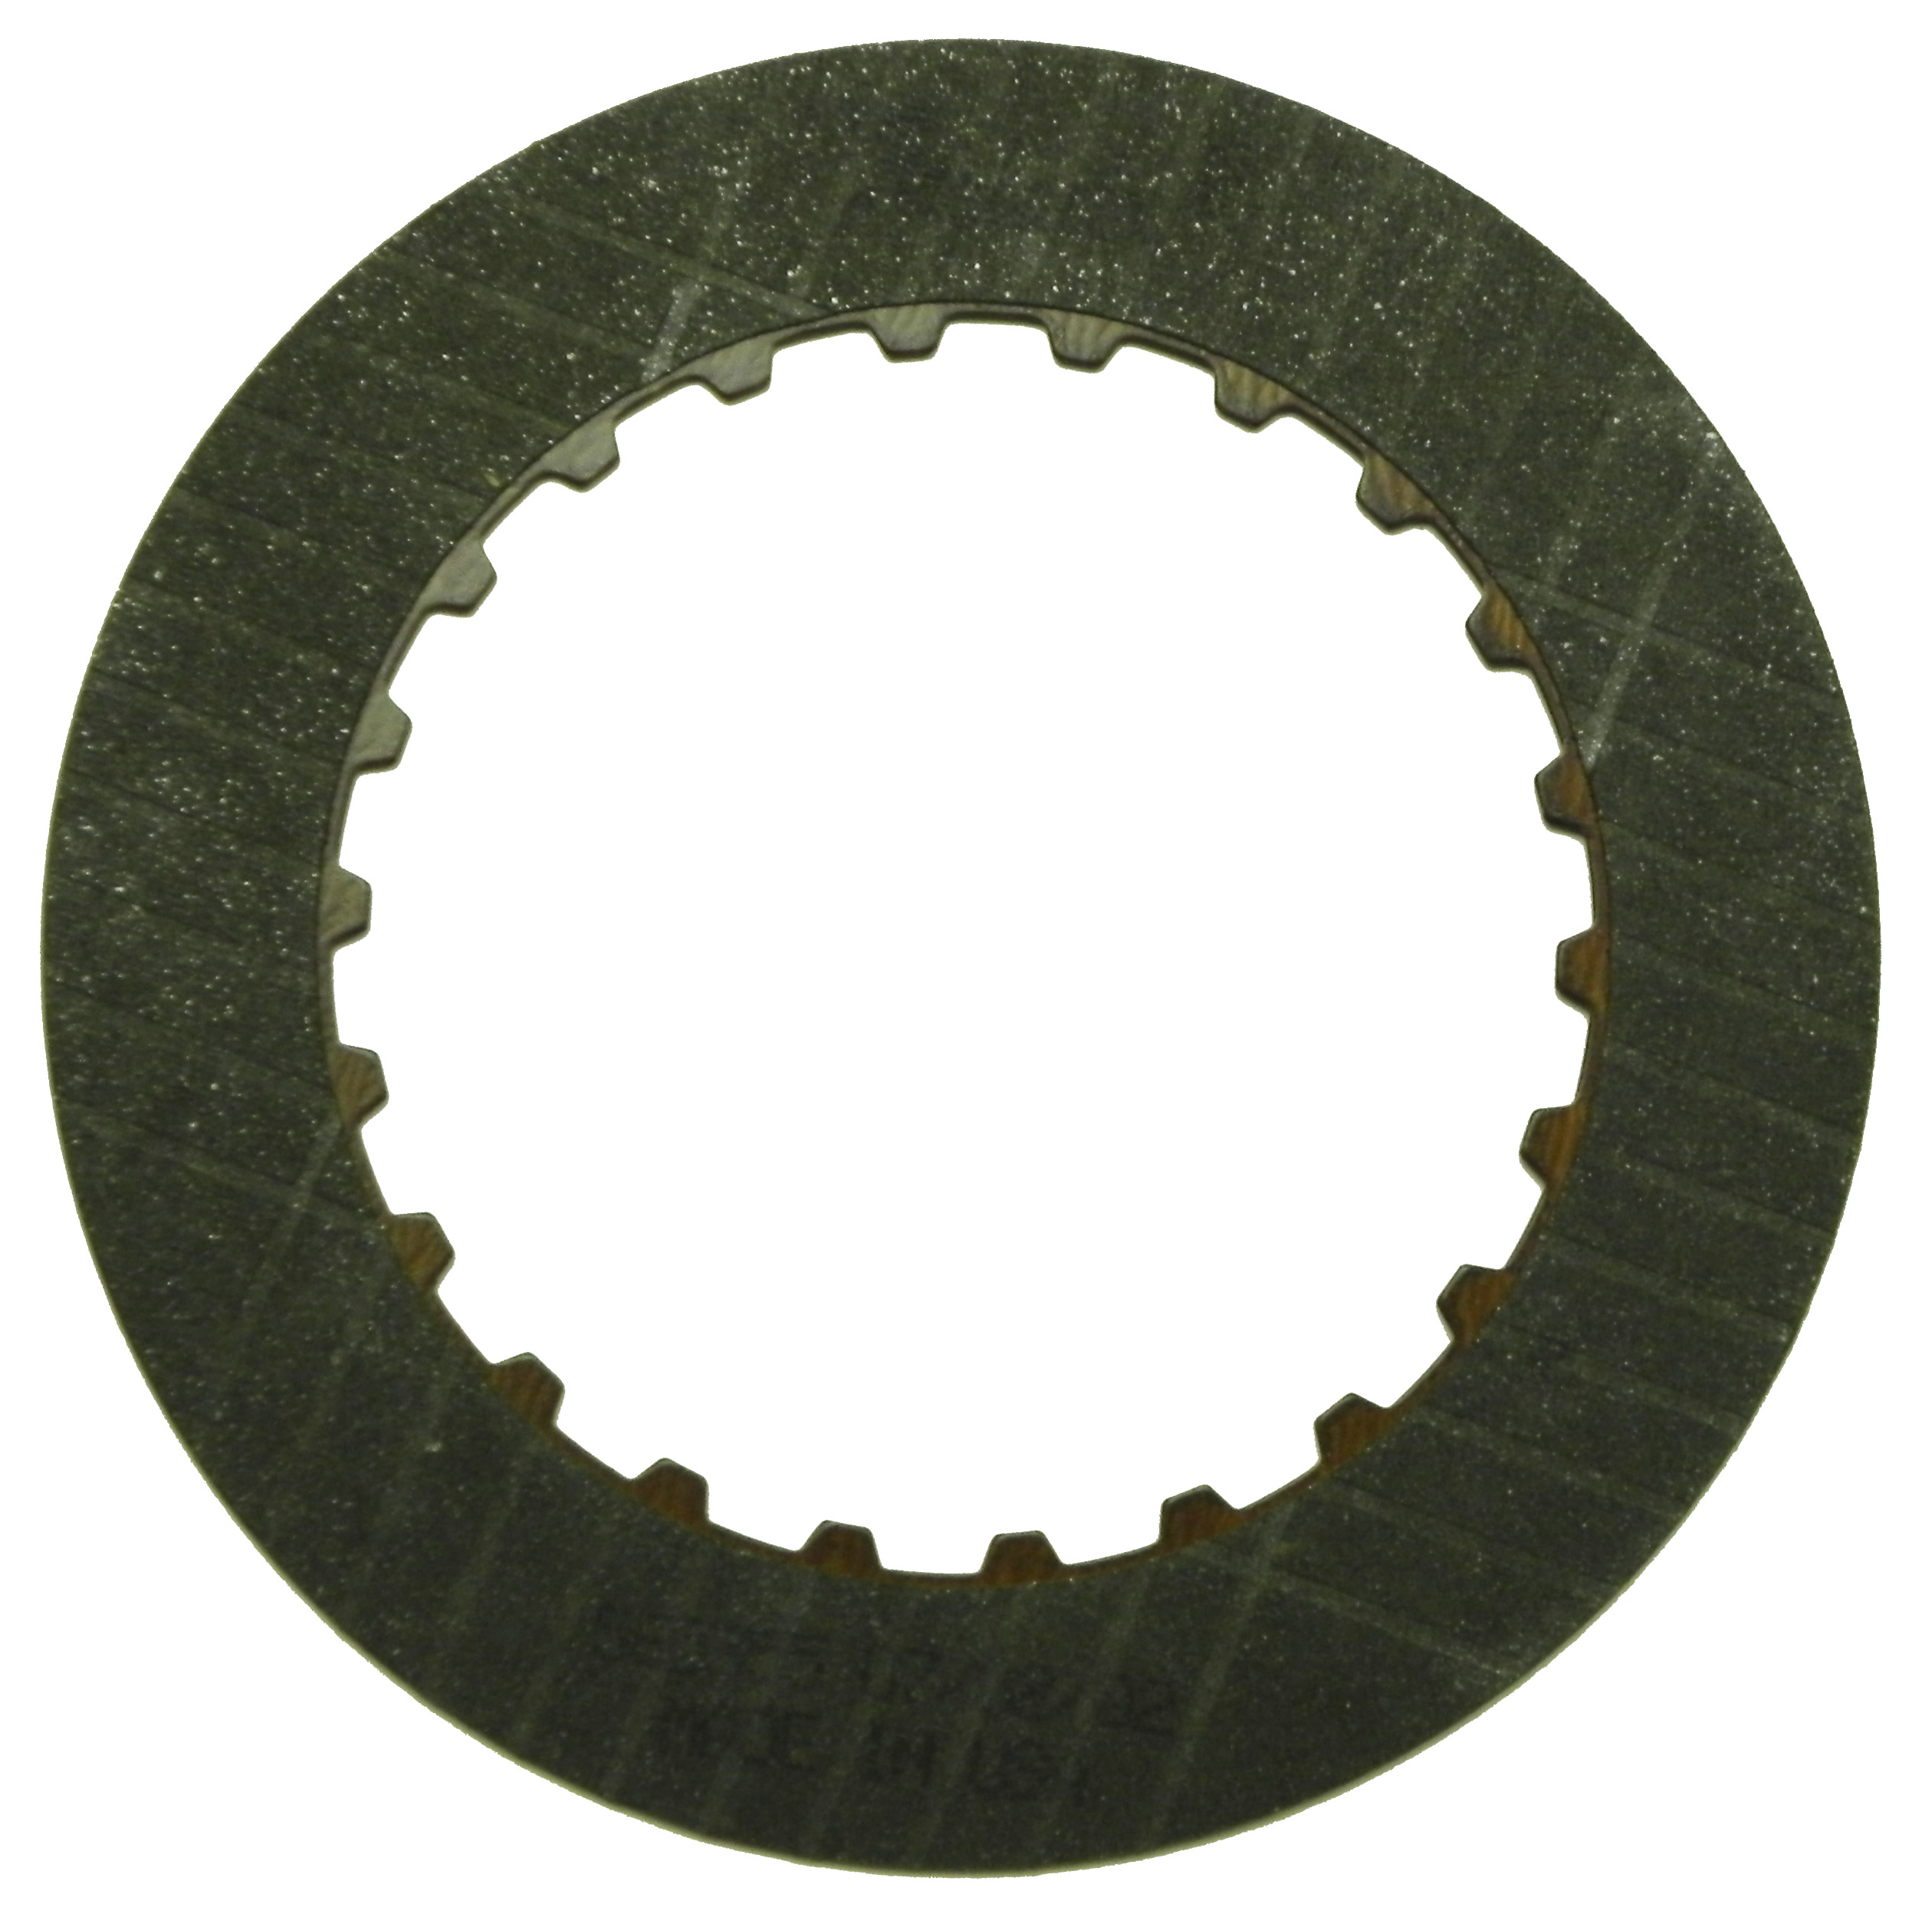 R560355 | 1995-2006 Friction Clutch Plate High Energy K3 AG4 High Energy